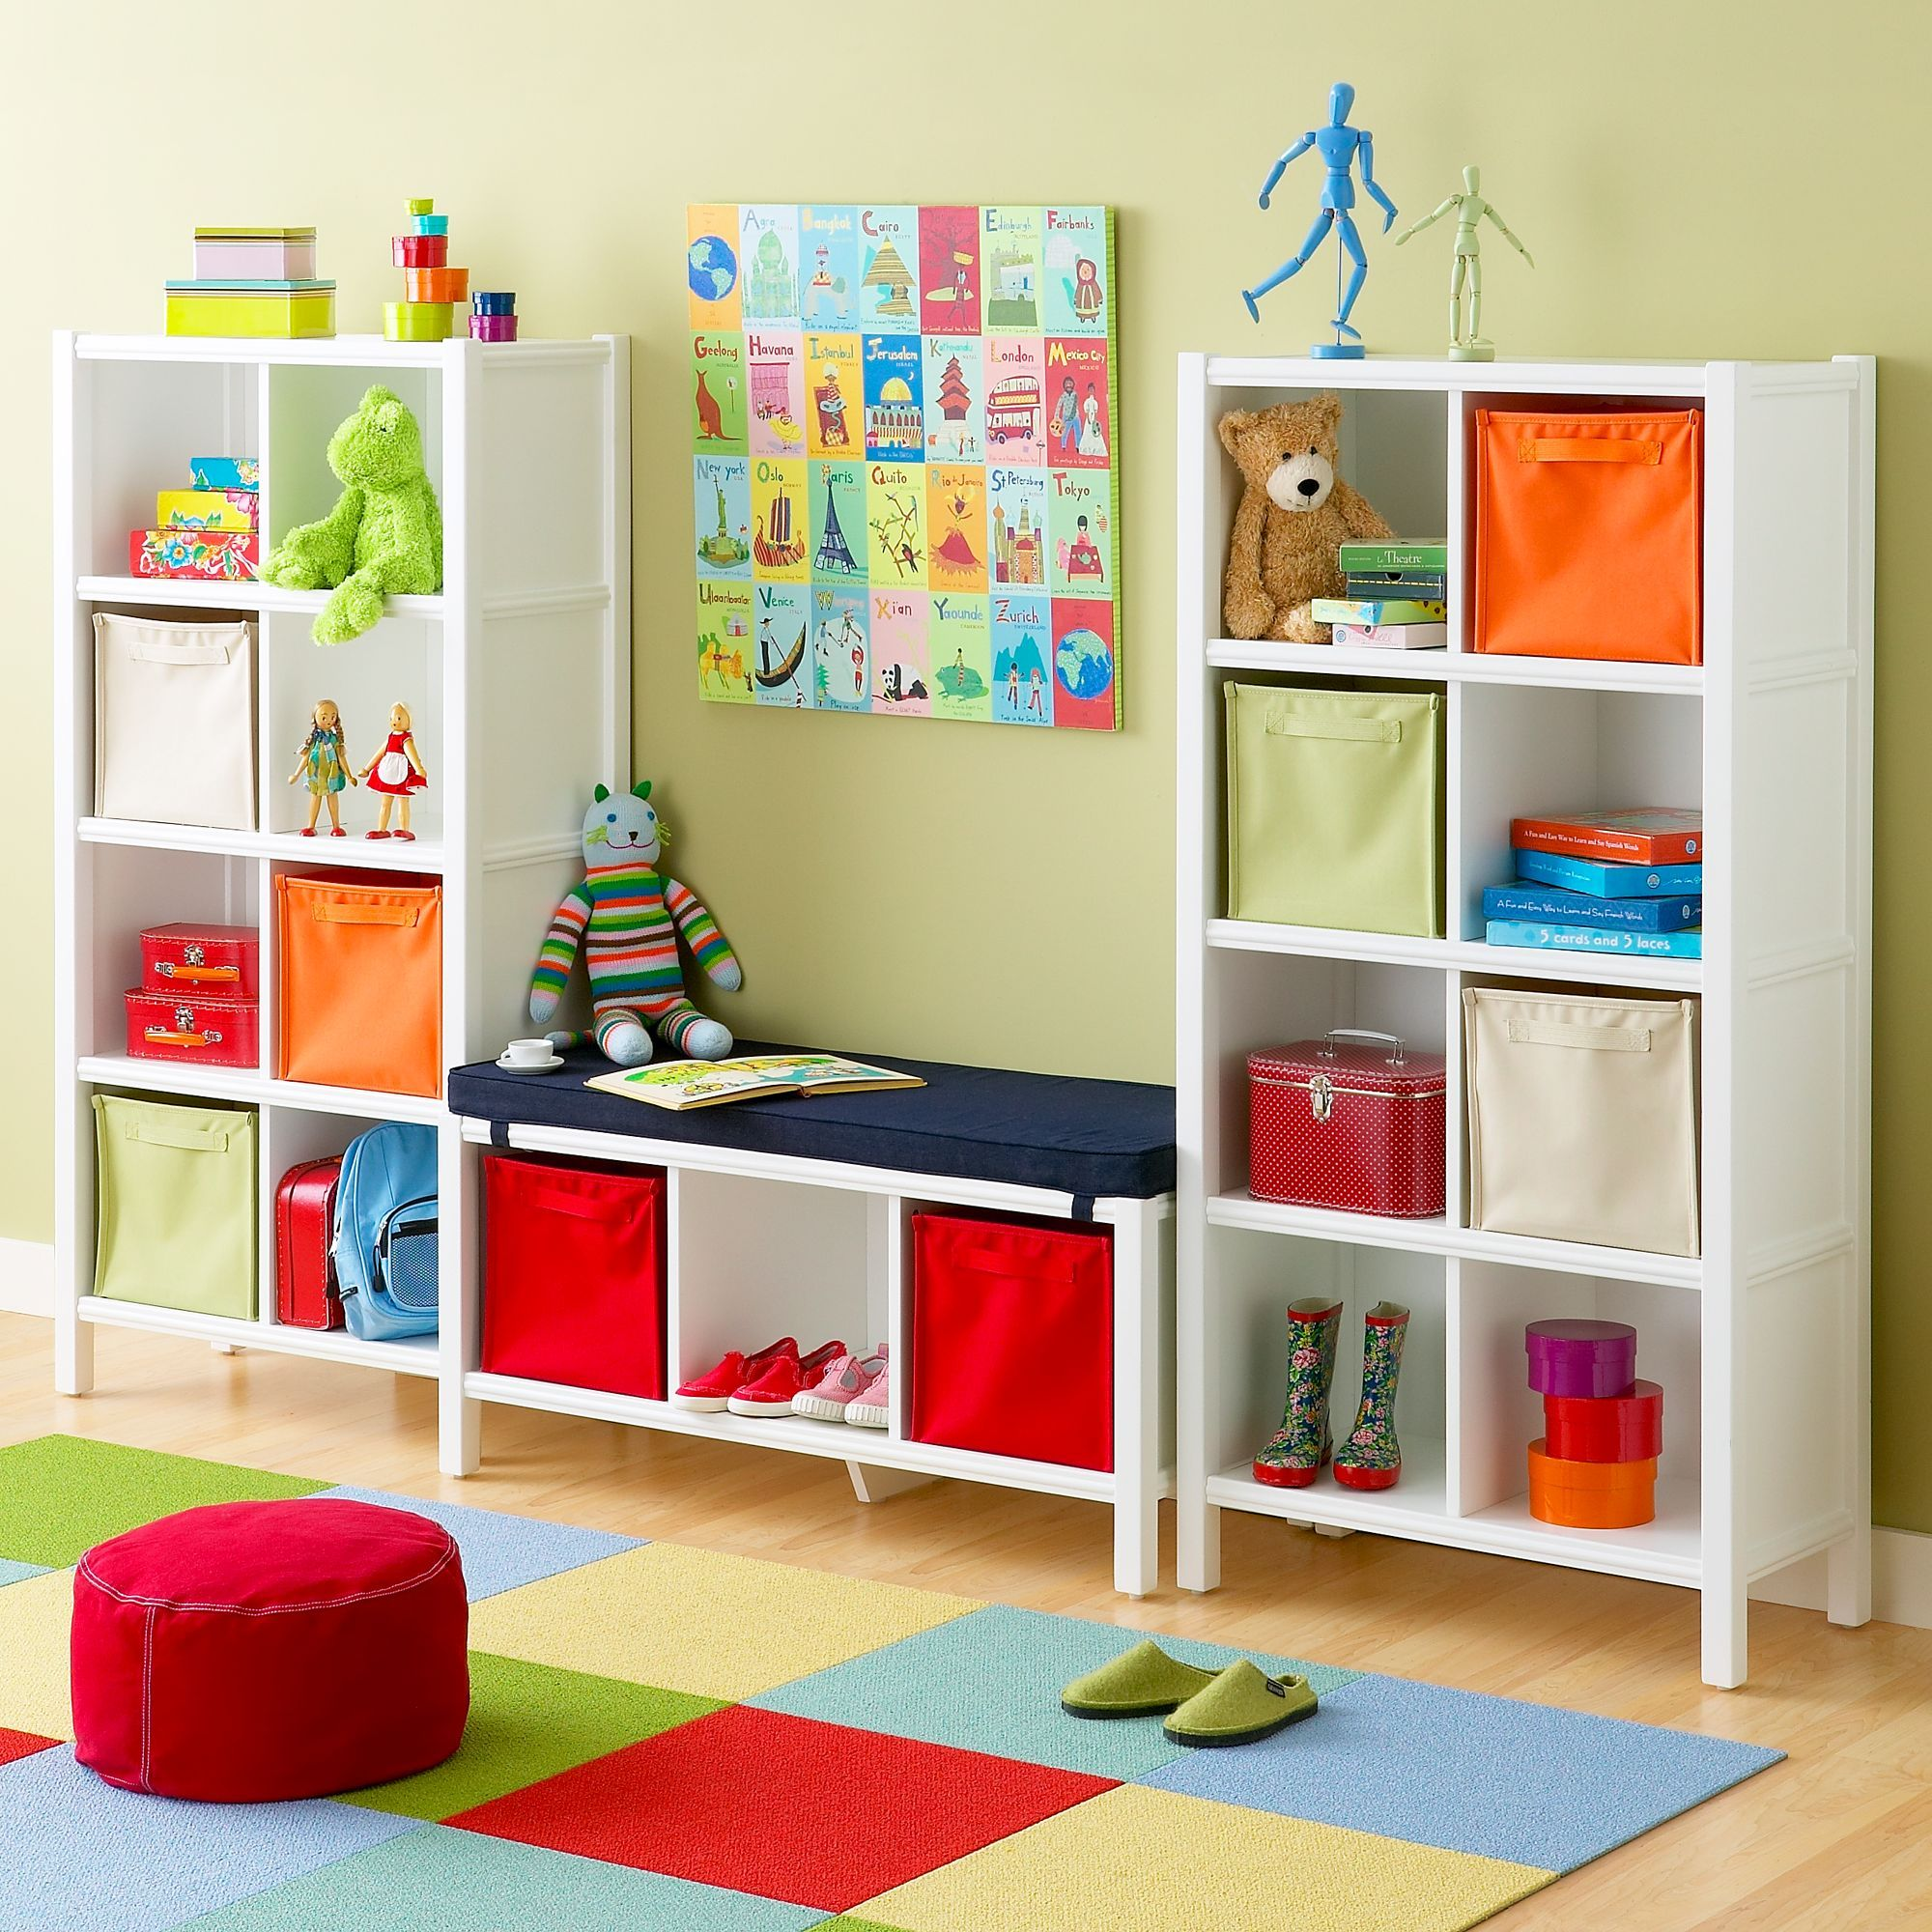 Kids Room Storage Ideas Kids Room Decoration Newhomesforsalehouston For The Home